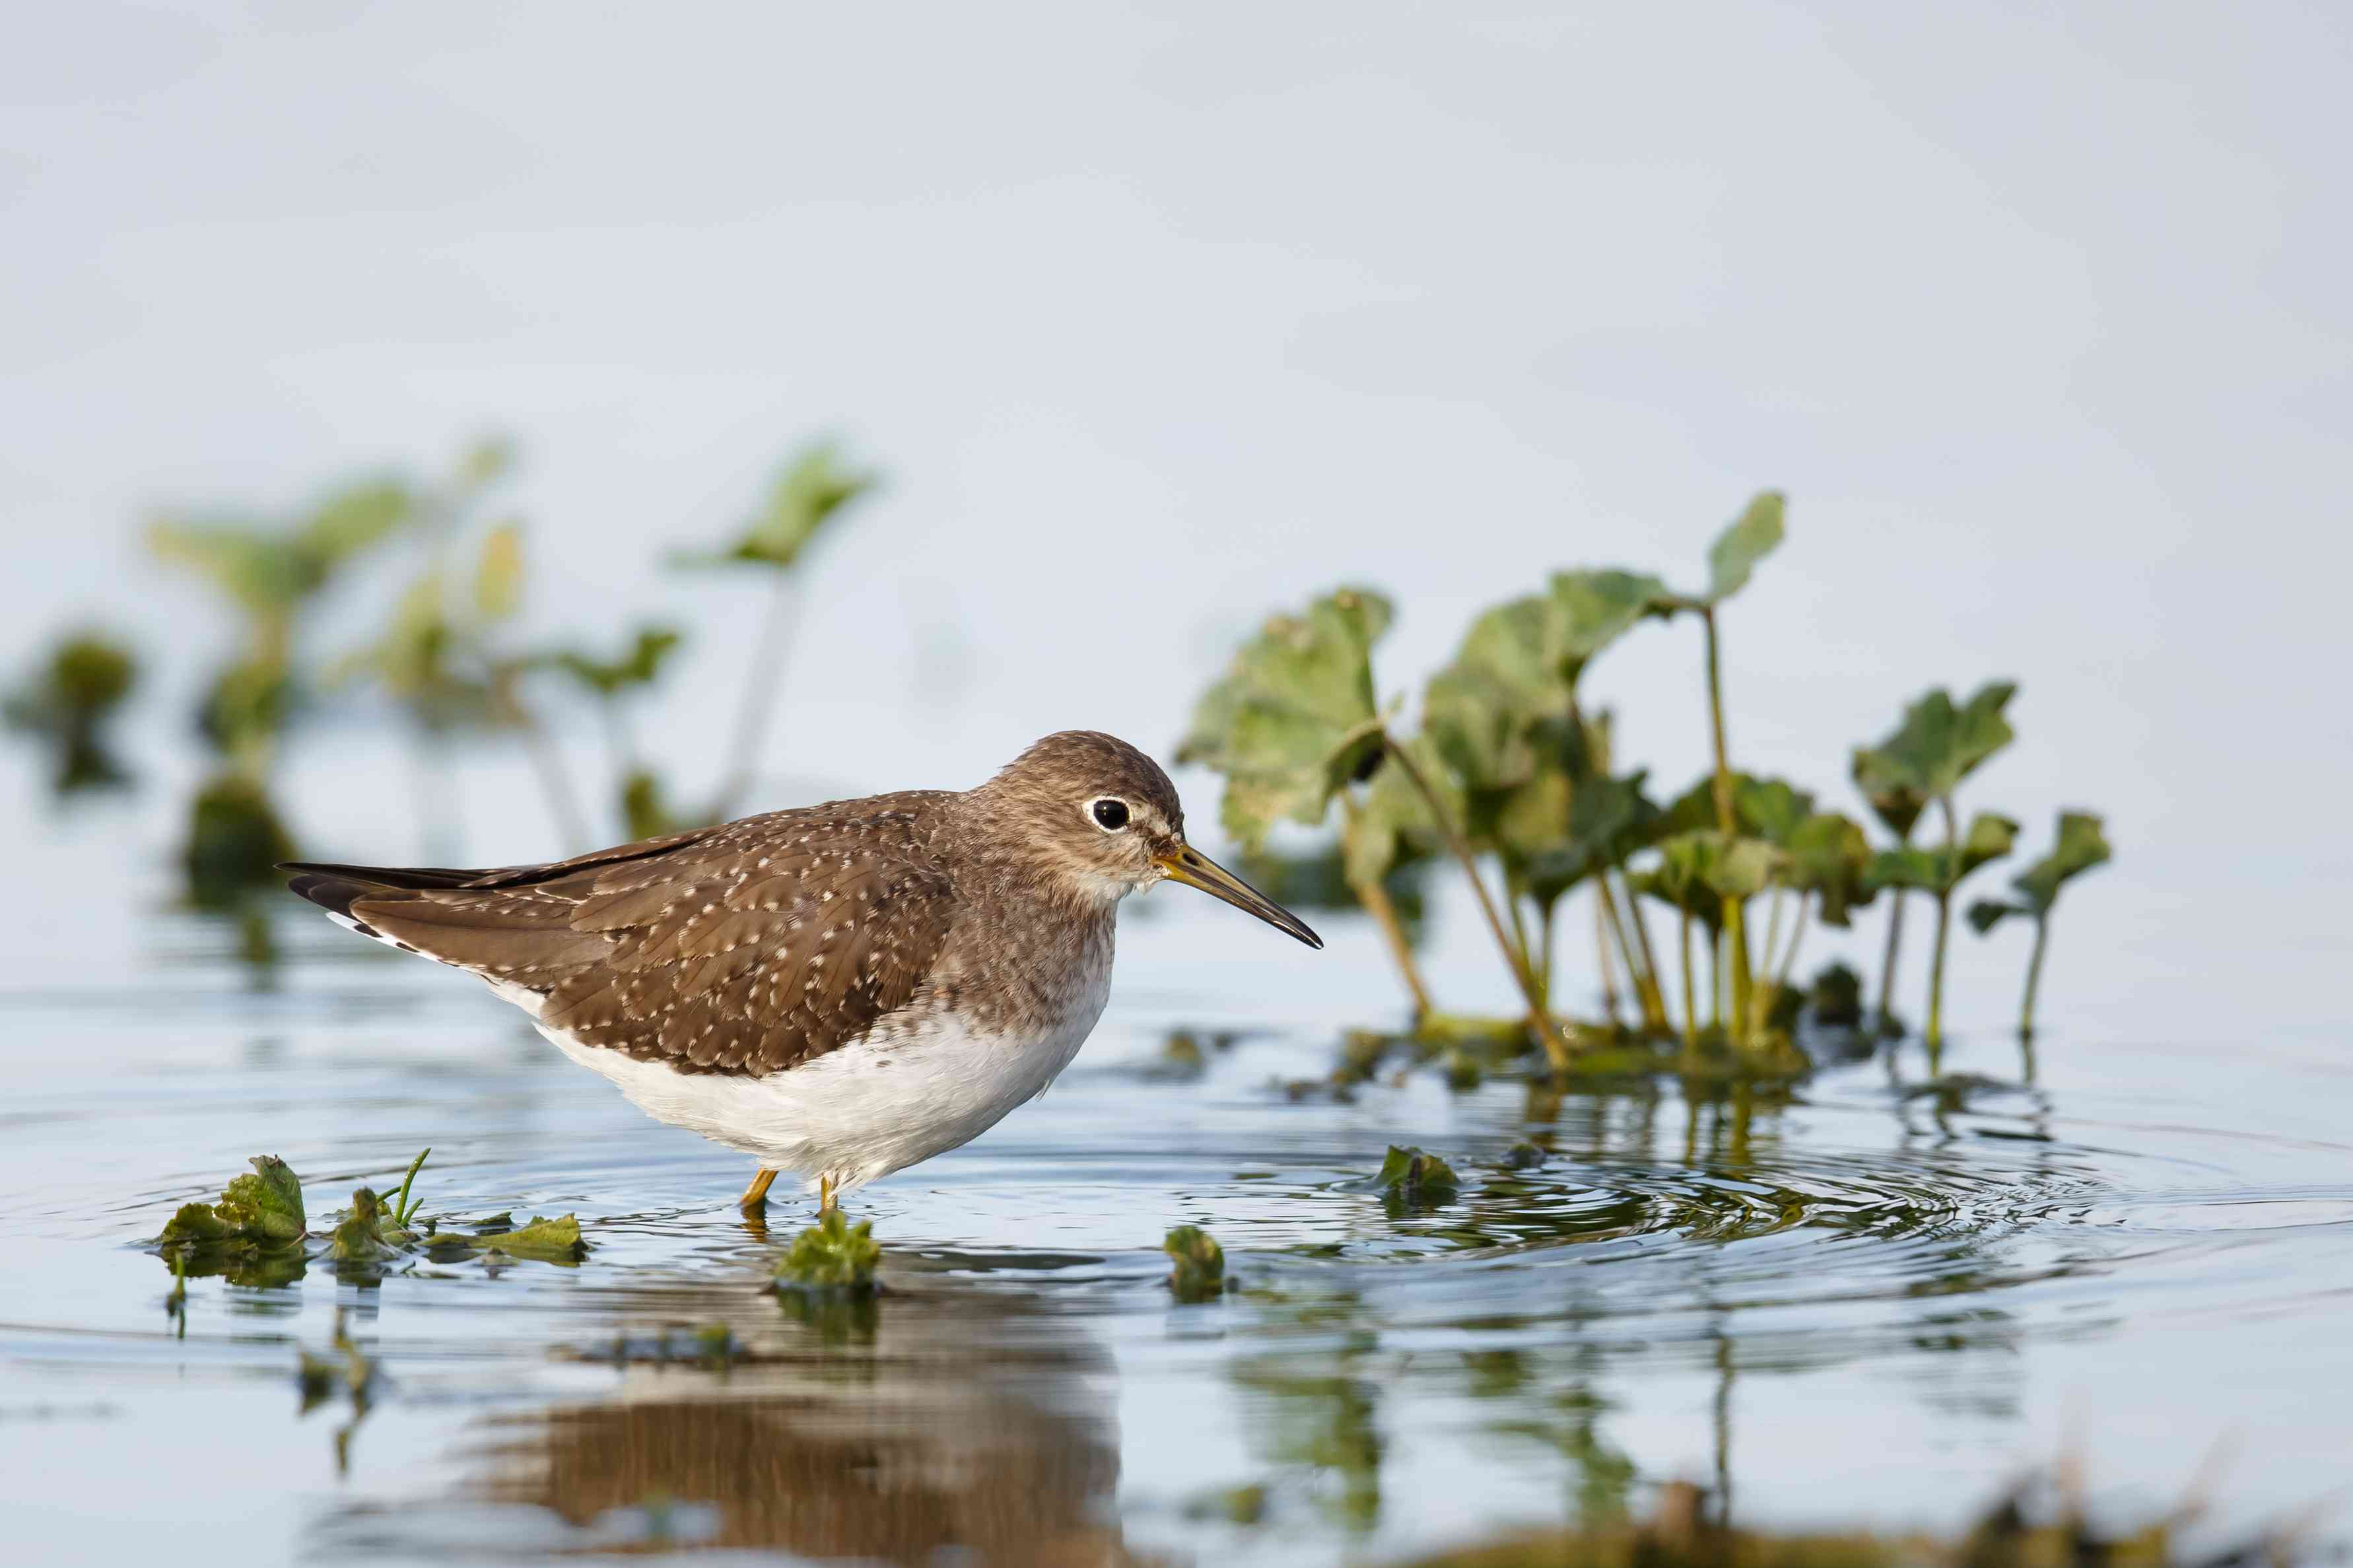 Solitary Sandpiper standing in water next to small plants